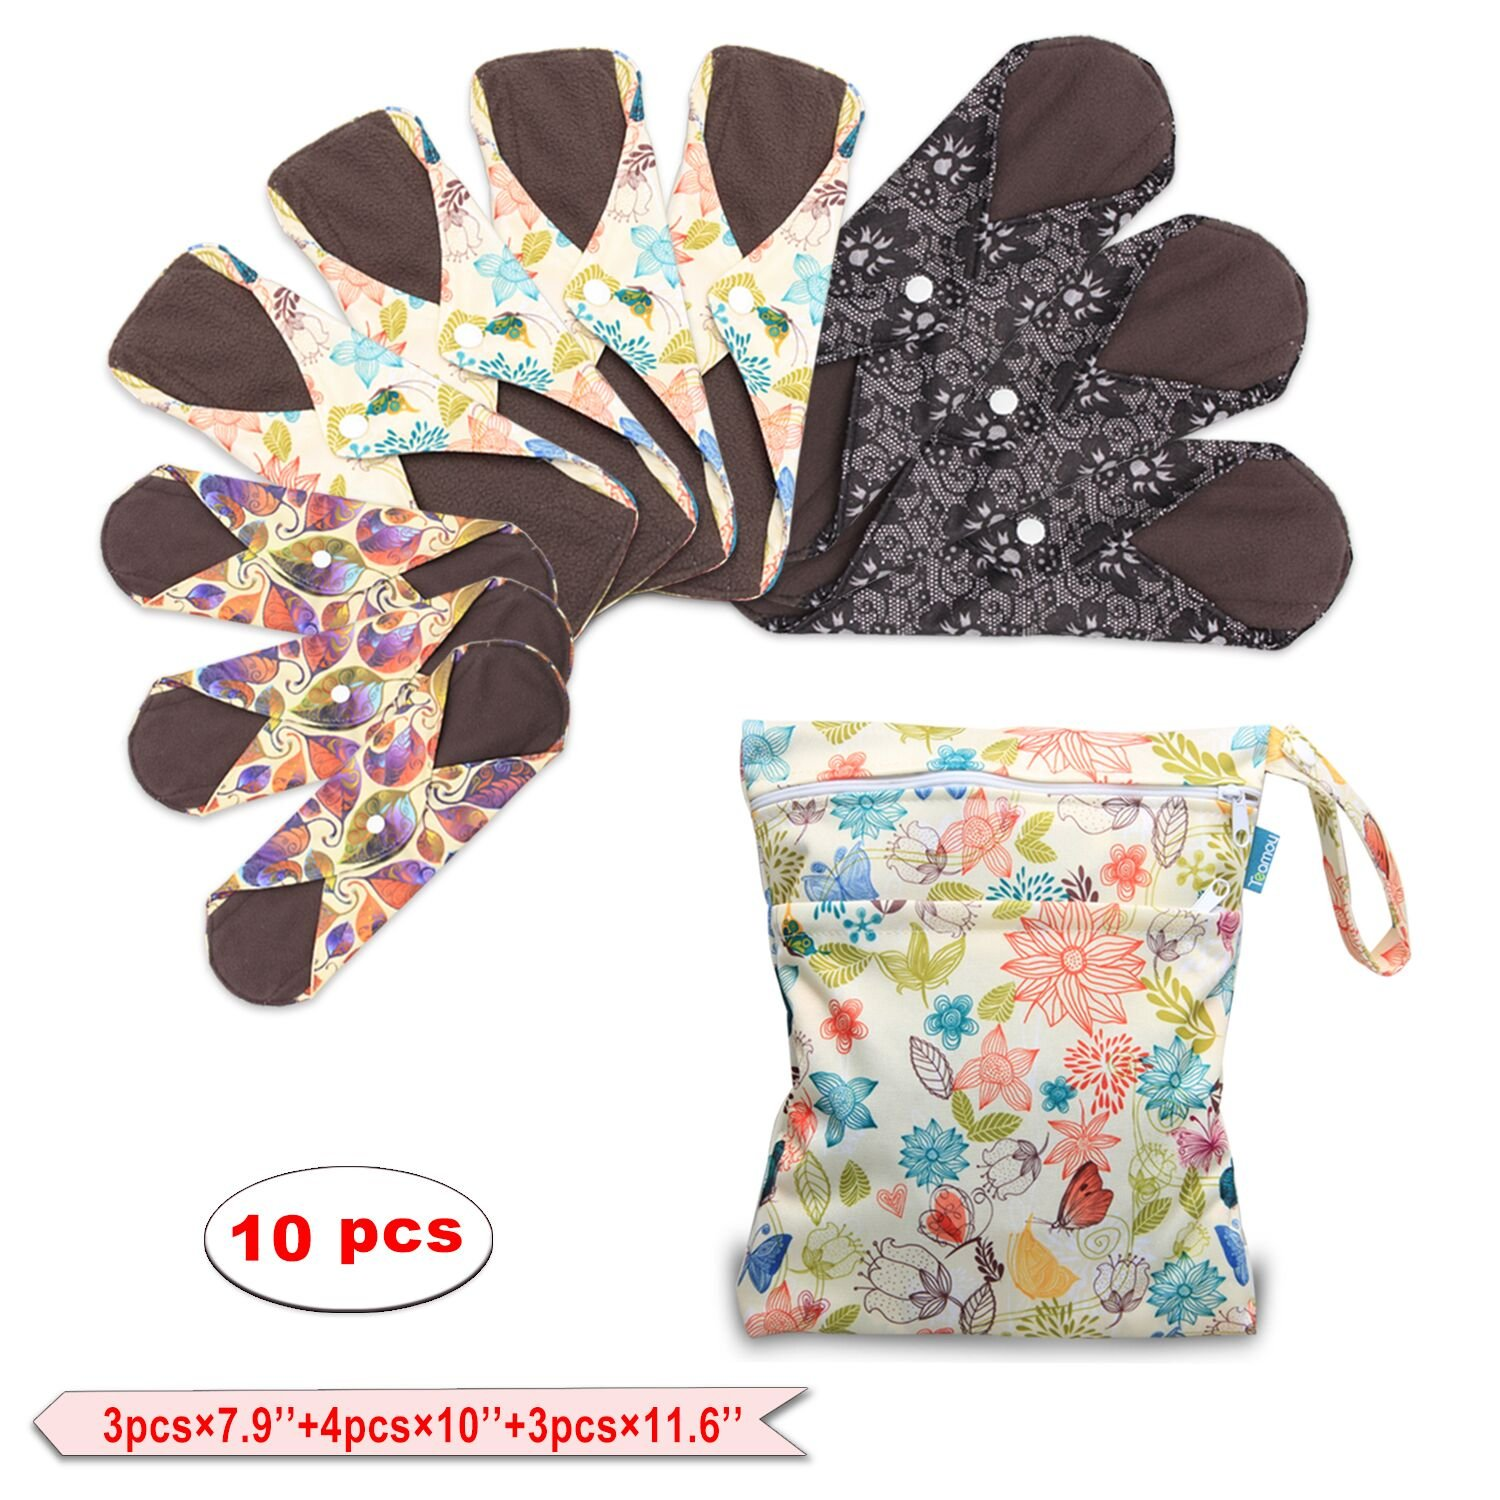 Teamoy 10Pcs Sanitary Pad,Reusable Washable Cloth Menstrual Pads/Panty Liners with Wet Bag, Super-Absorbent, Soft and Comfortable(3pcs×7.9''+4pcs×10''+3pcs×11.6'')